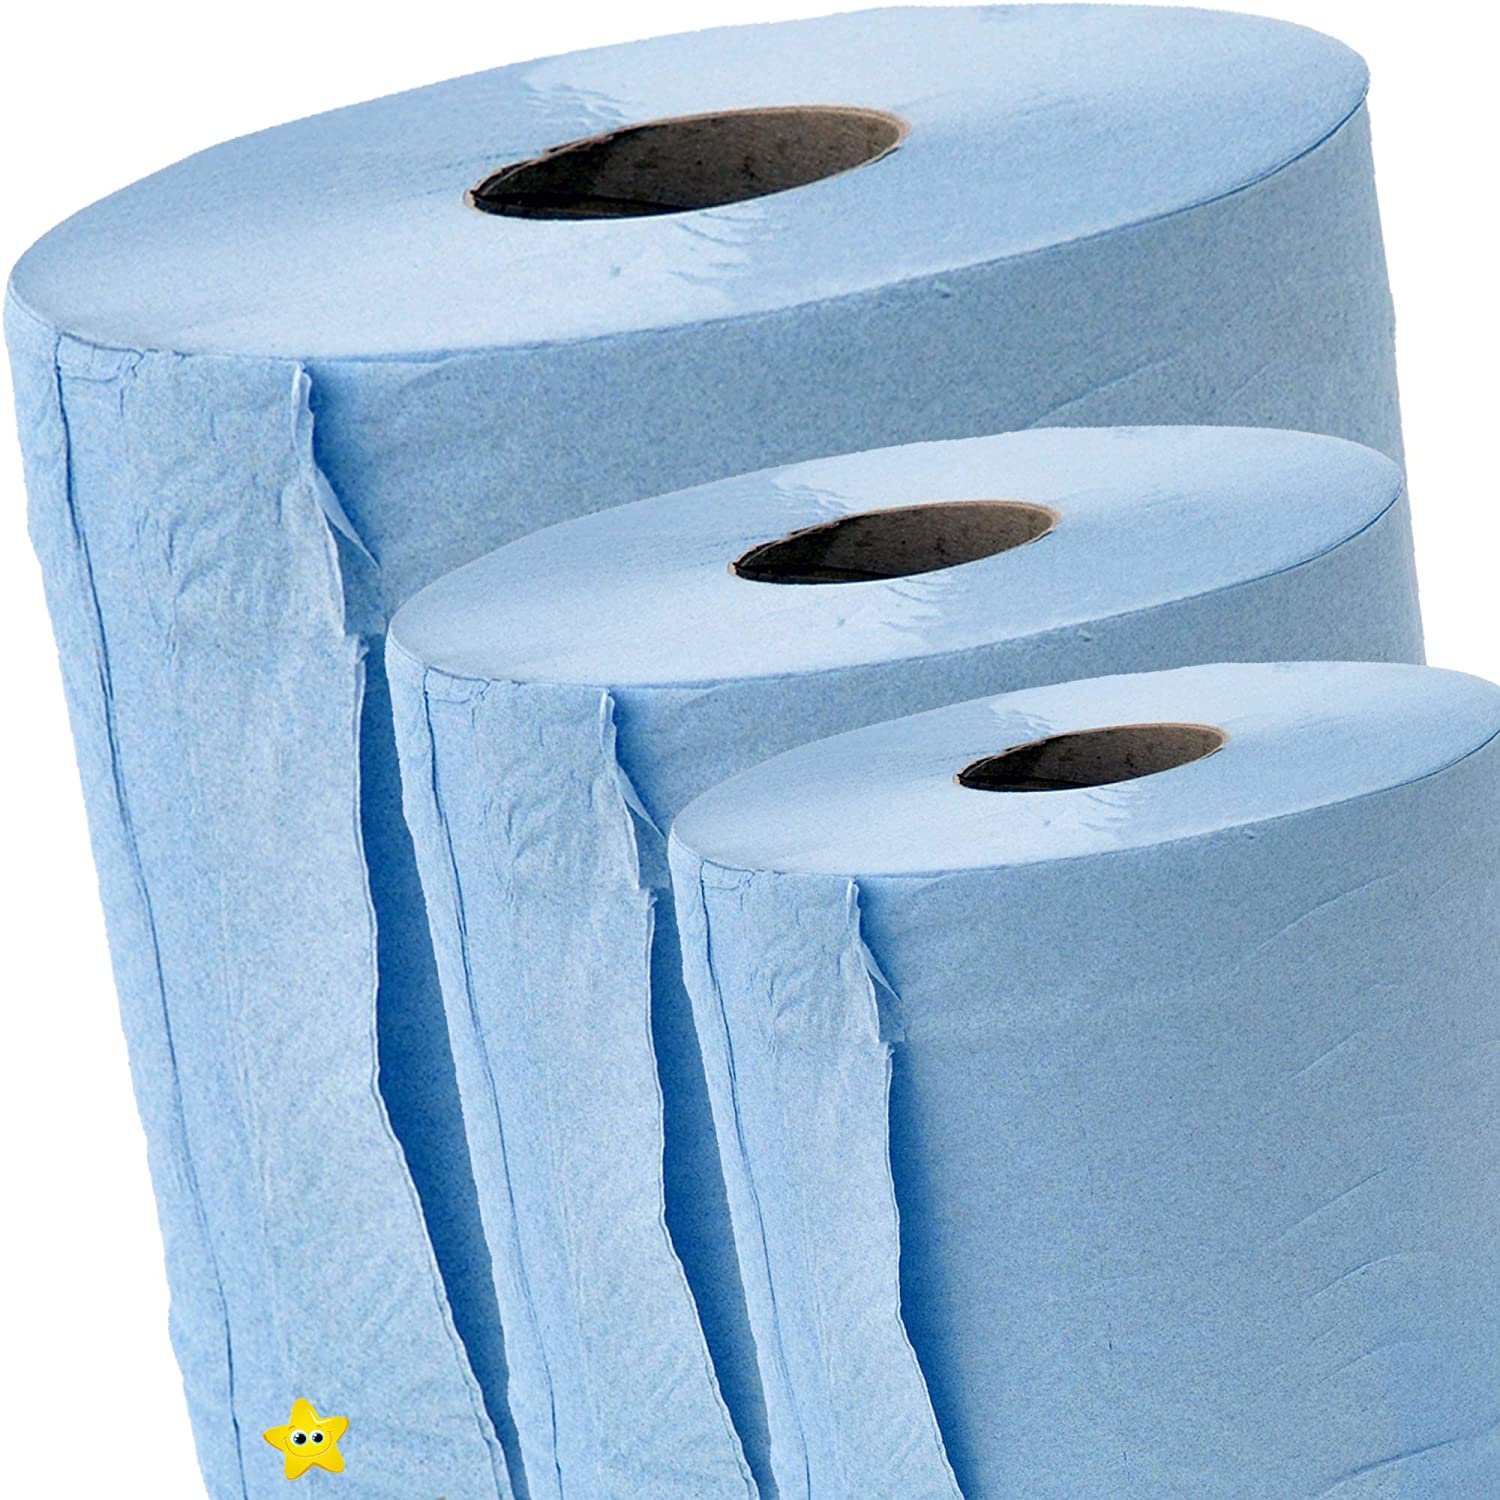 Pack of 12 Blue Centrefeed Rolls 2ply Paper Towels Embossed Wiper Cleaning Multipurpose Roll STAR SUPPLIES